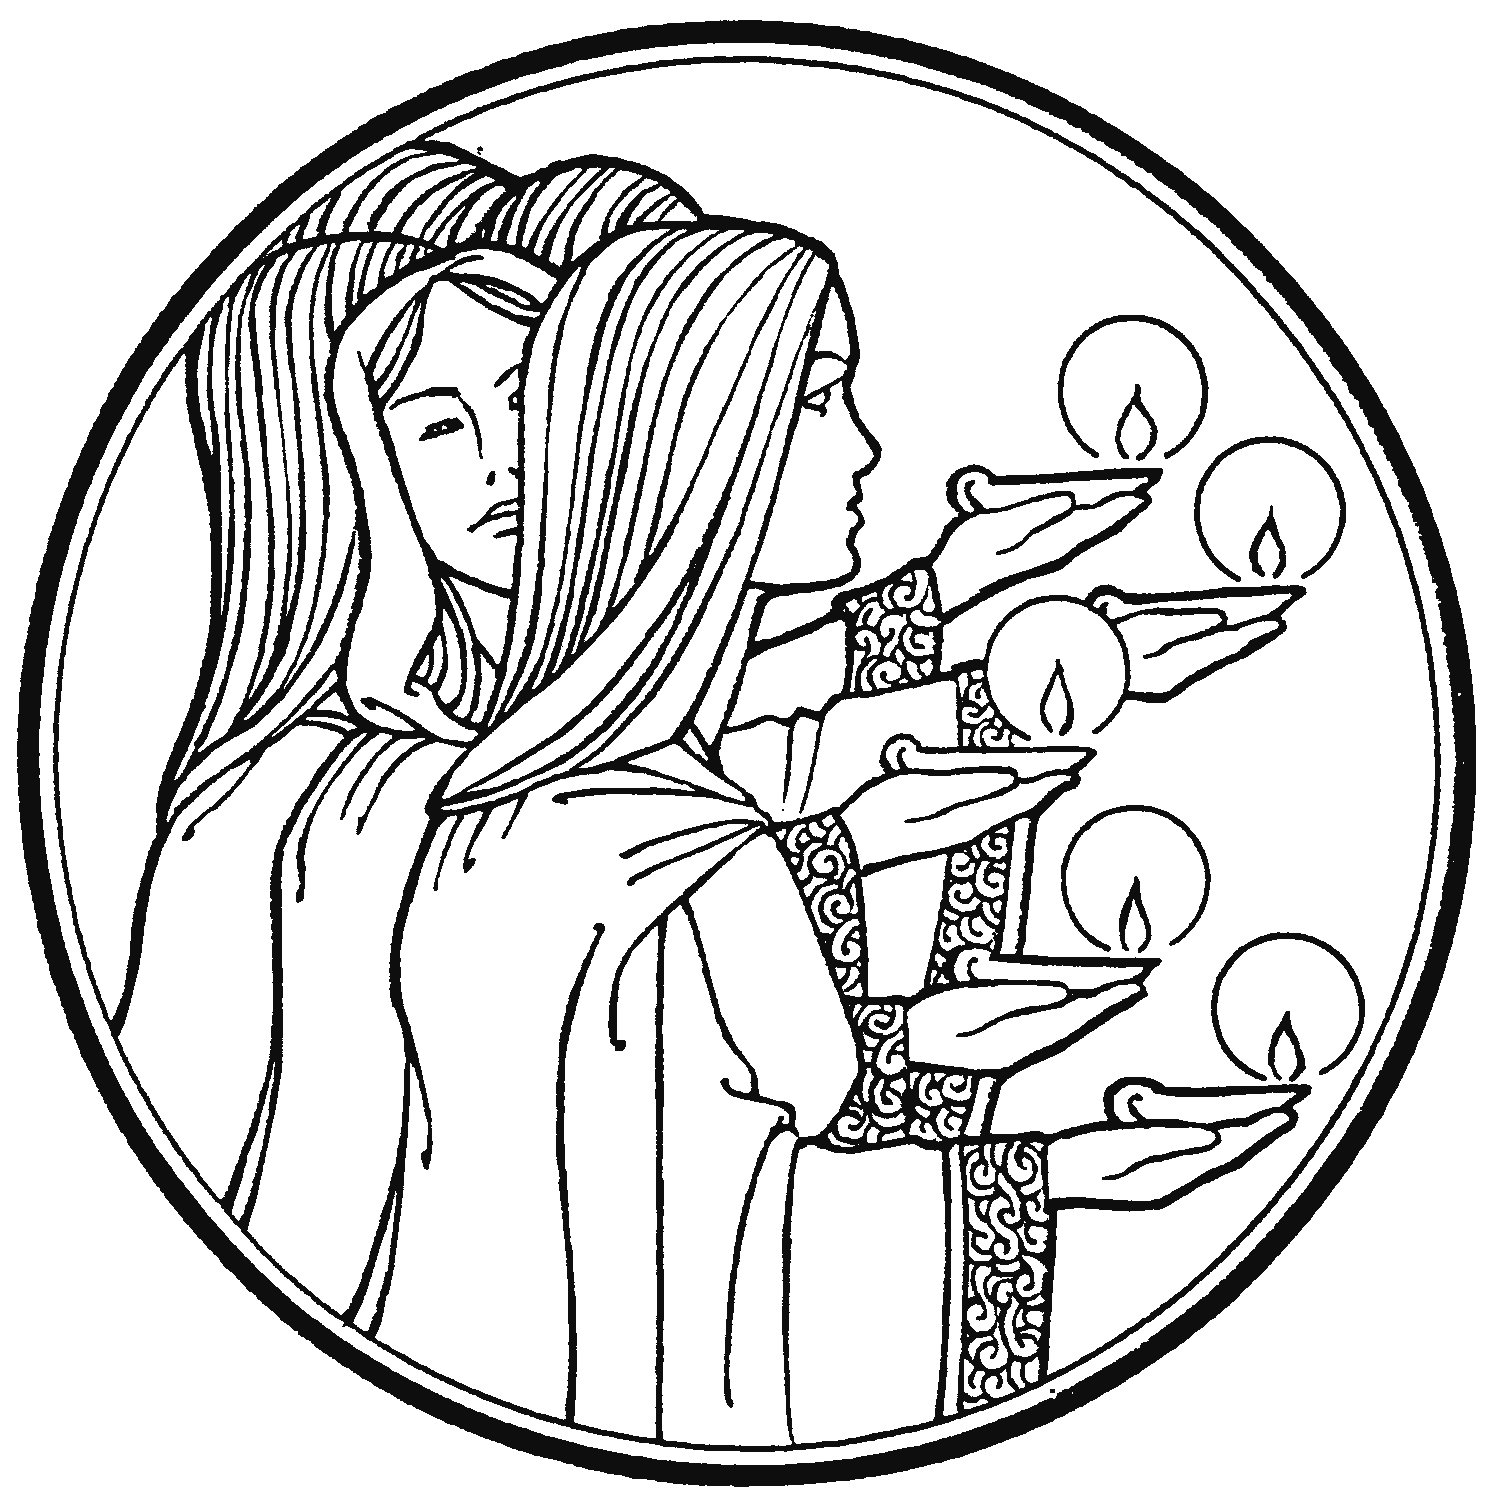 parable of the talents coloring page - Clip Art Library | 1504x1492